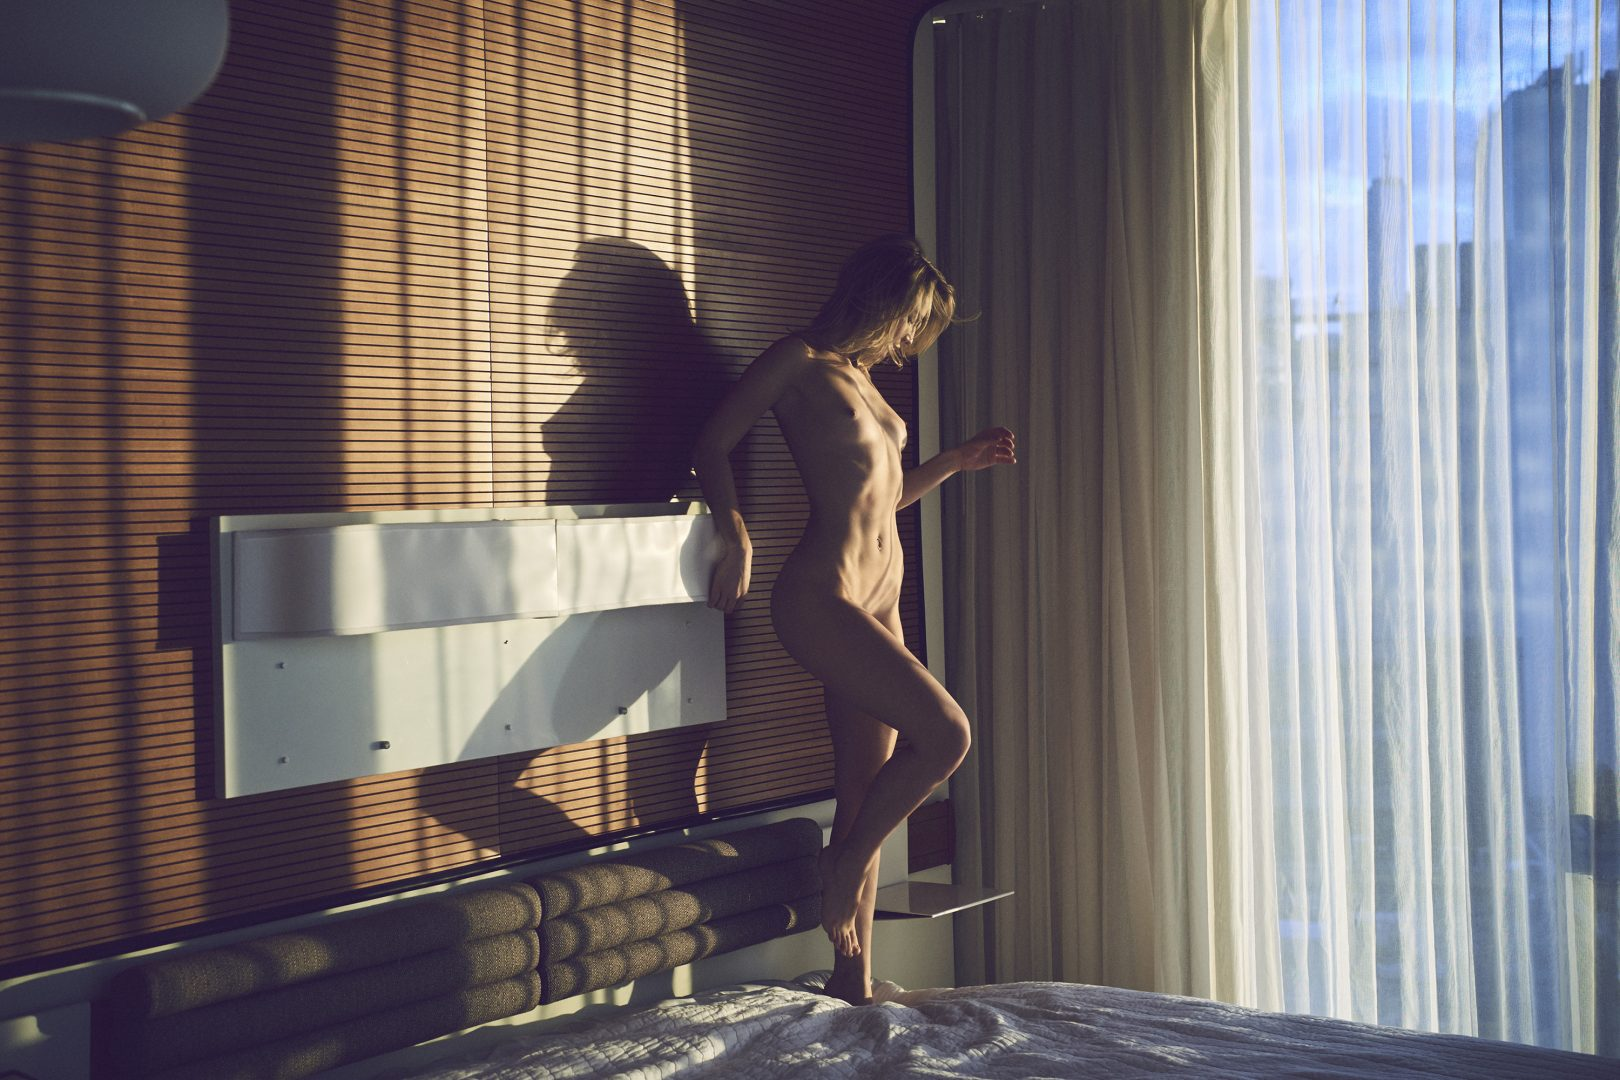 Naked girl standing on bed in hotel room by Stefan Rappo